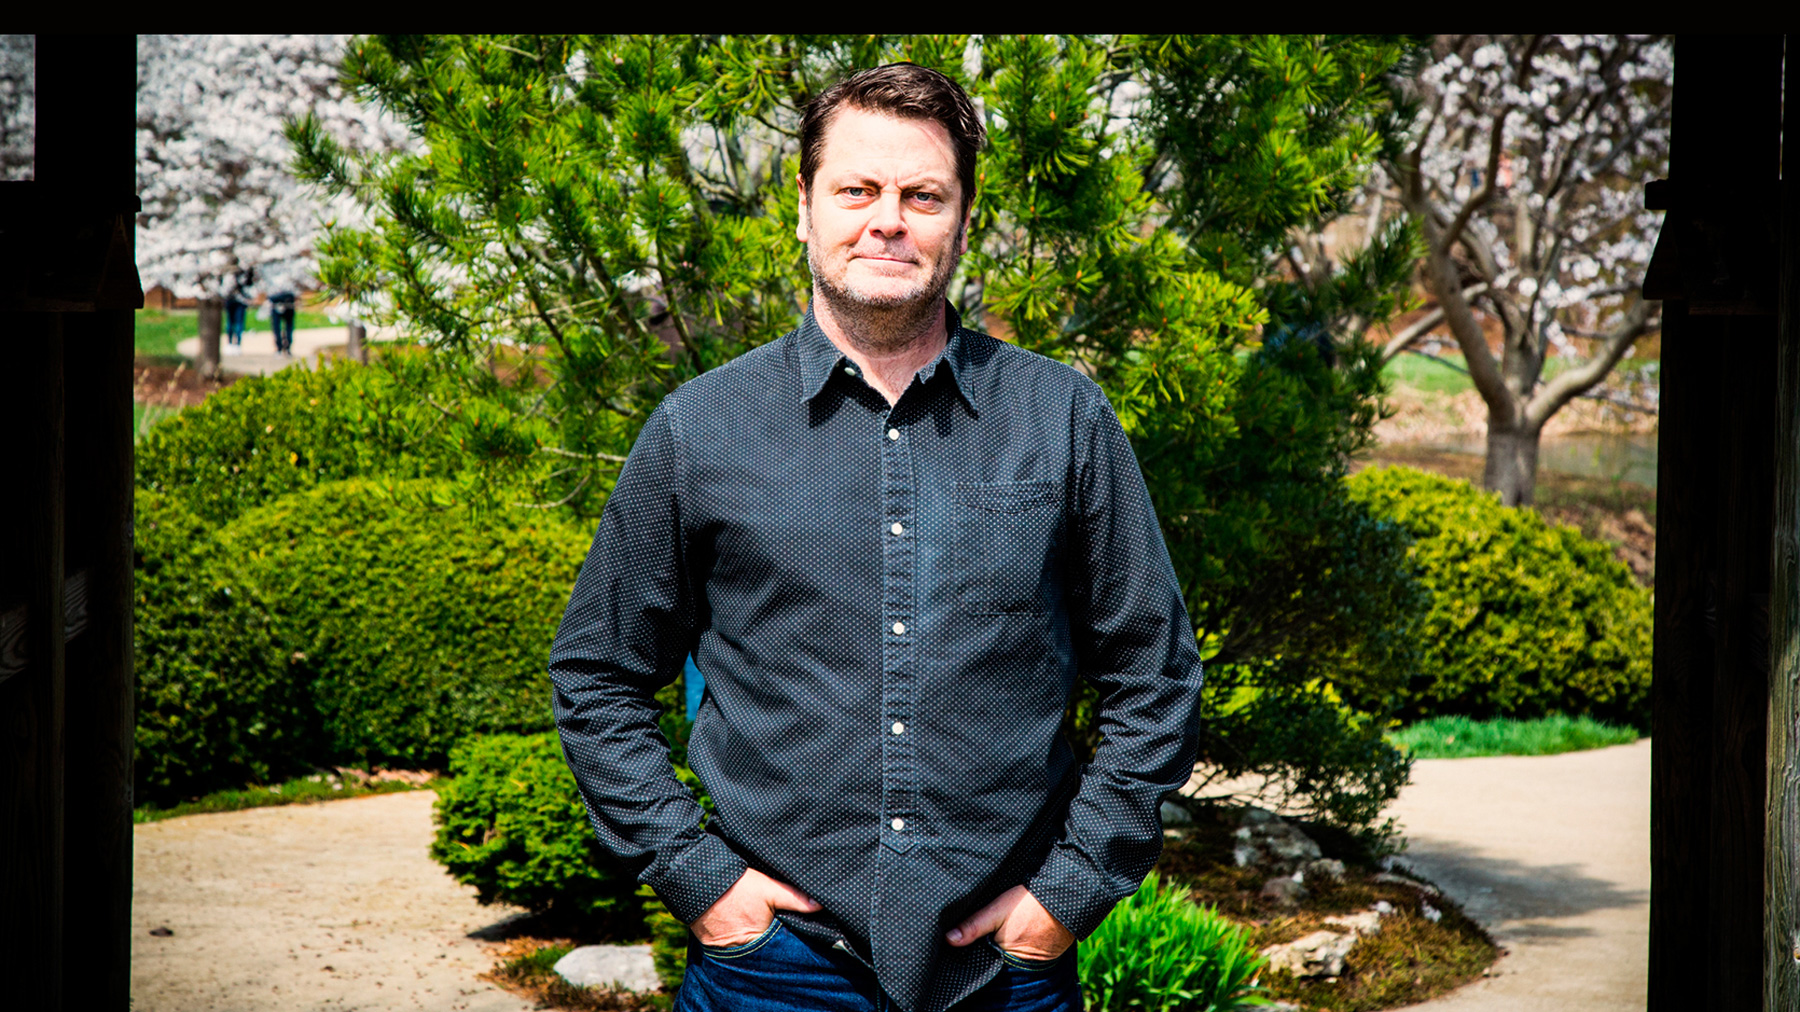 Alumnus and actor Nick Offerman, photo provided by Offerman